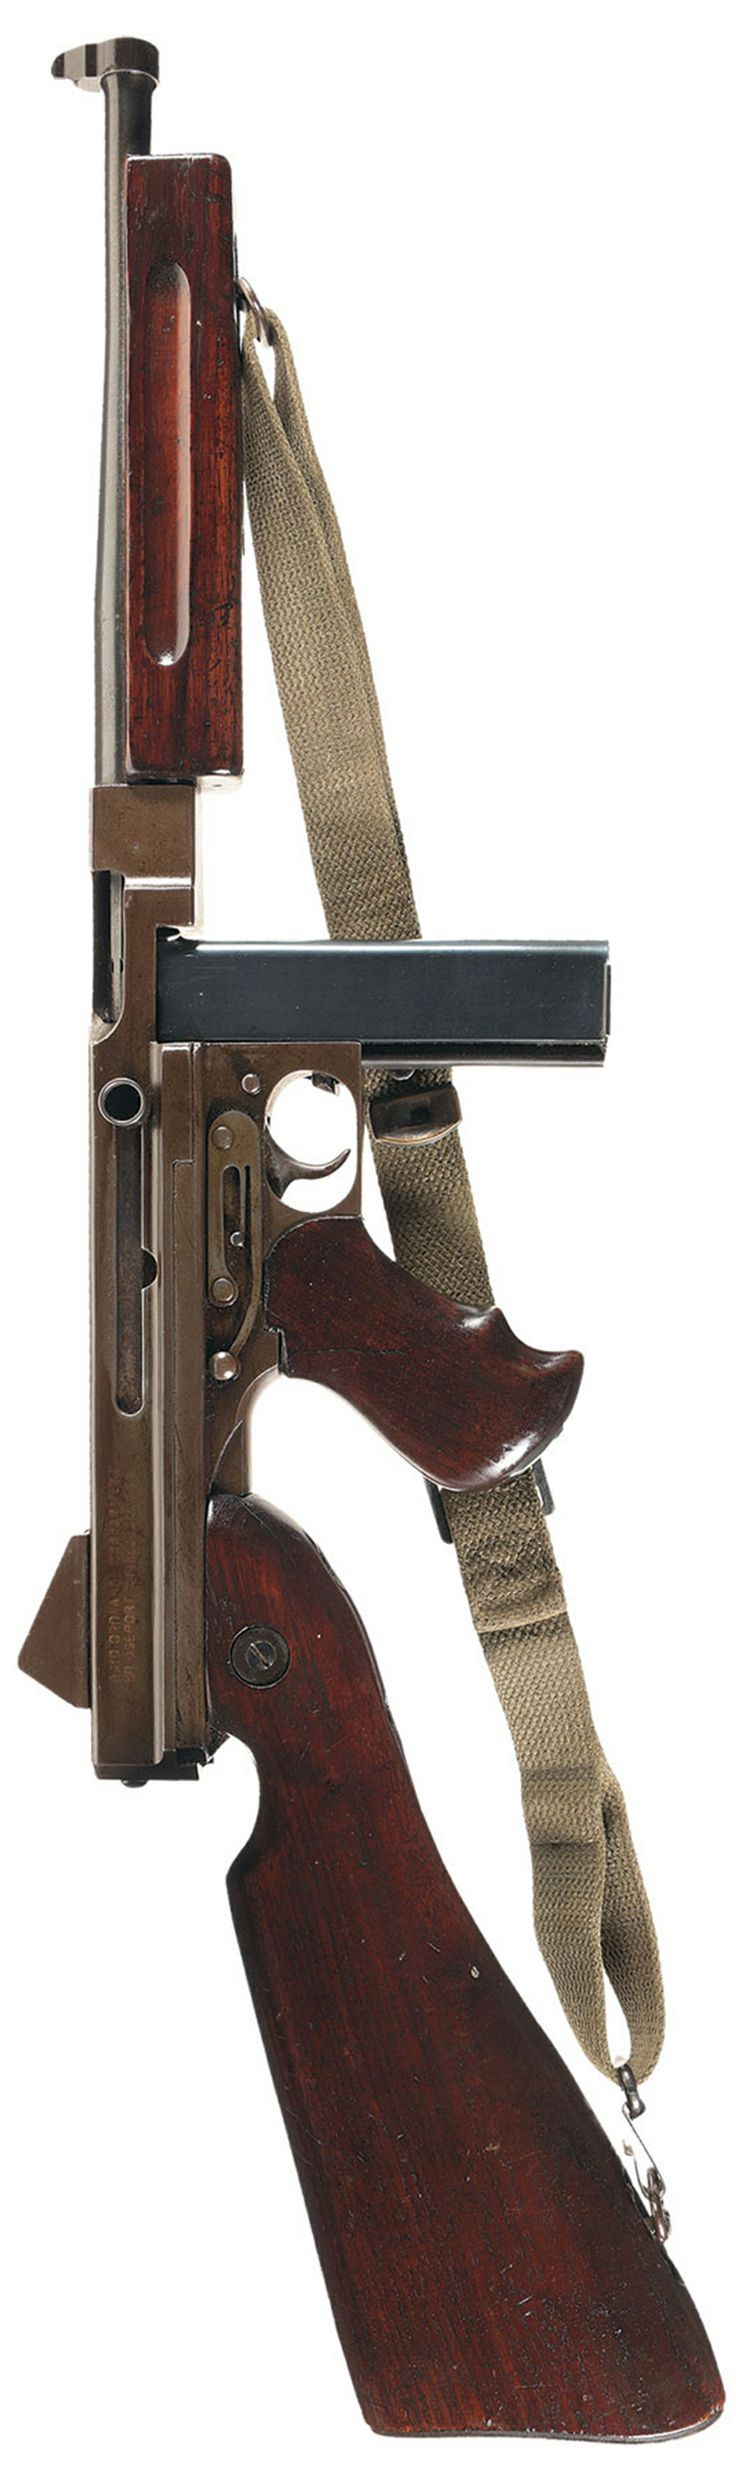 THOMPSON SUBMACHINE GUN/CALIBER 45 M1/A1/NO. 432620. AUTO ORDNANCE CORPORATION/BRIDGEPORT CONNECTICUT U.S.A.